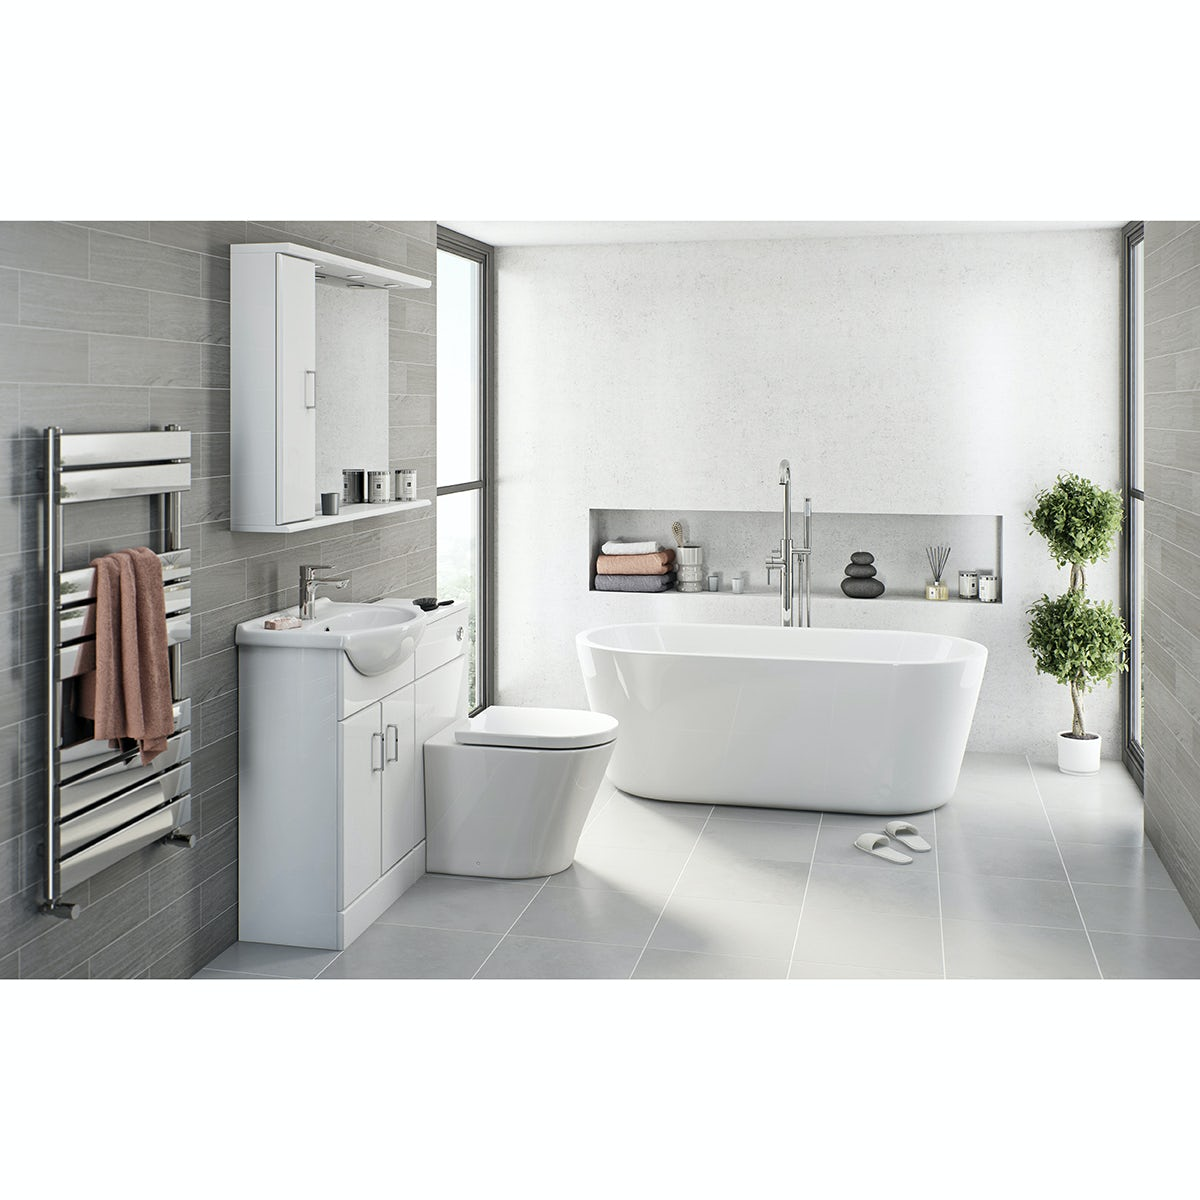 Orchard eden white bathroom suite with contemporary for Freestanding bath sizes